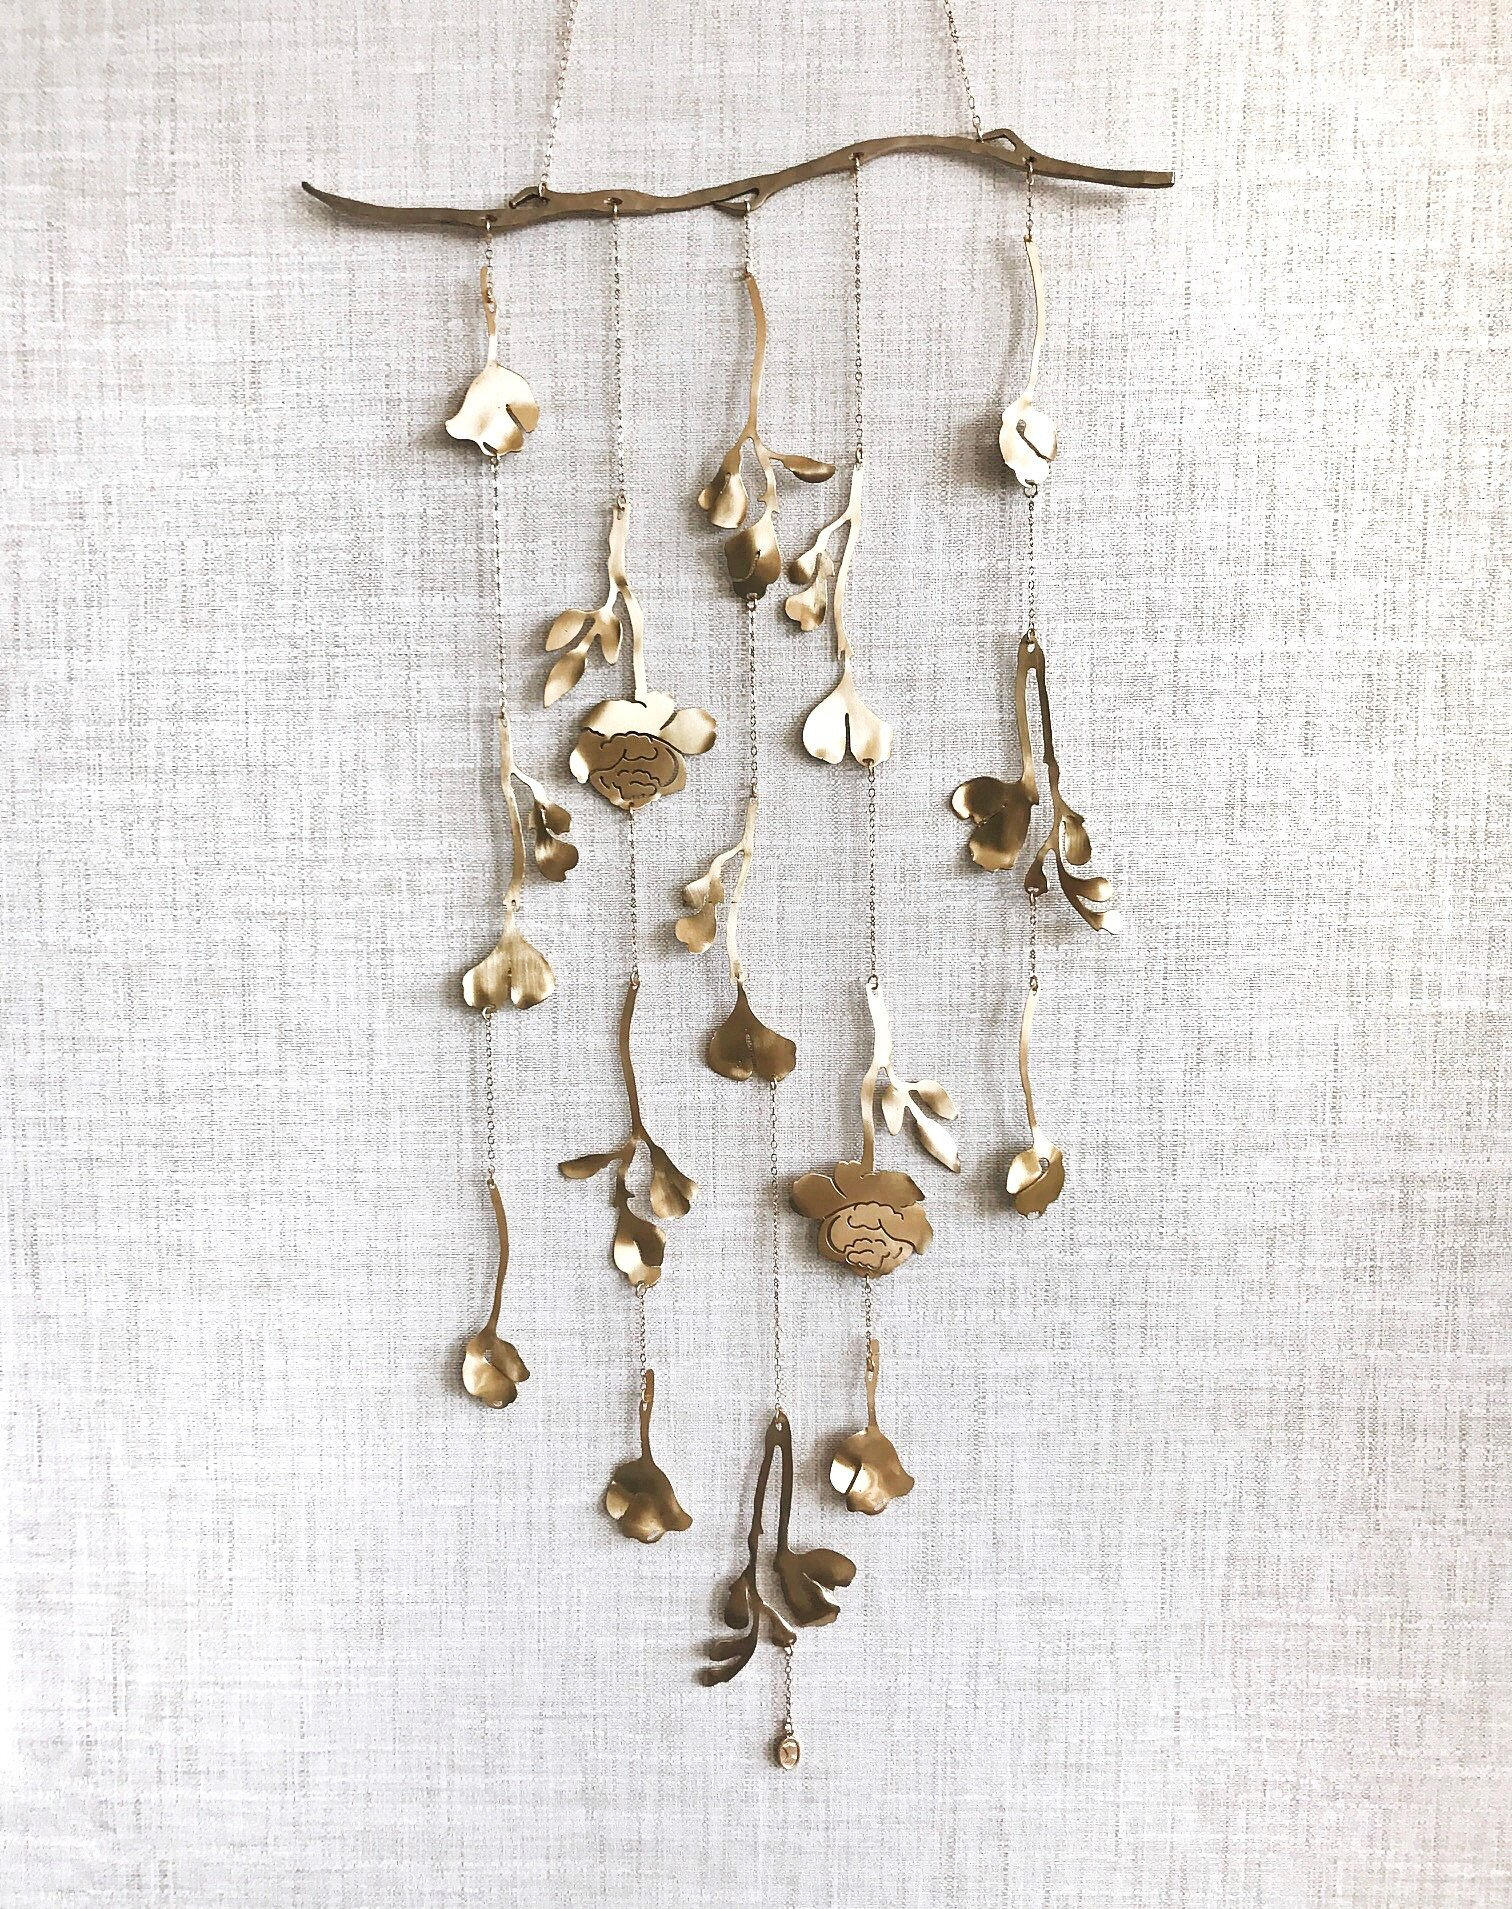 Floral Wall Hanging フラワー 壁掛けオブジェ